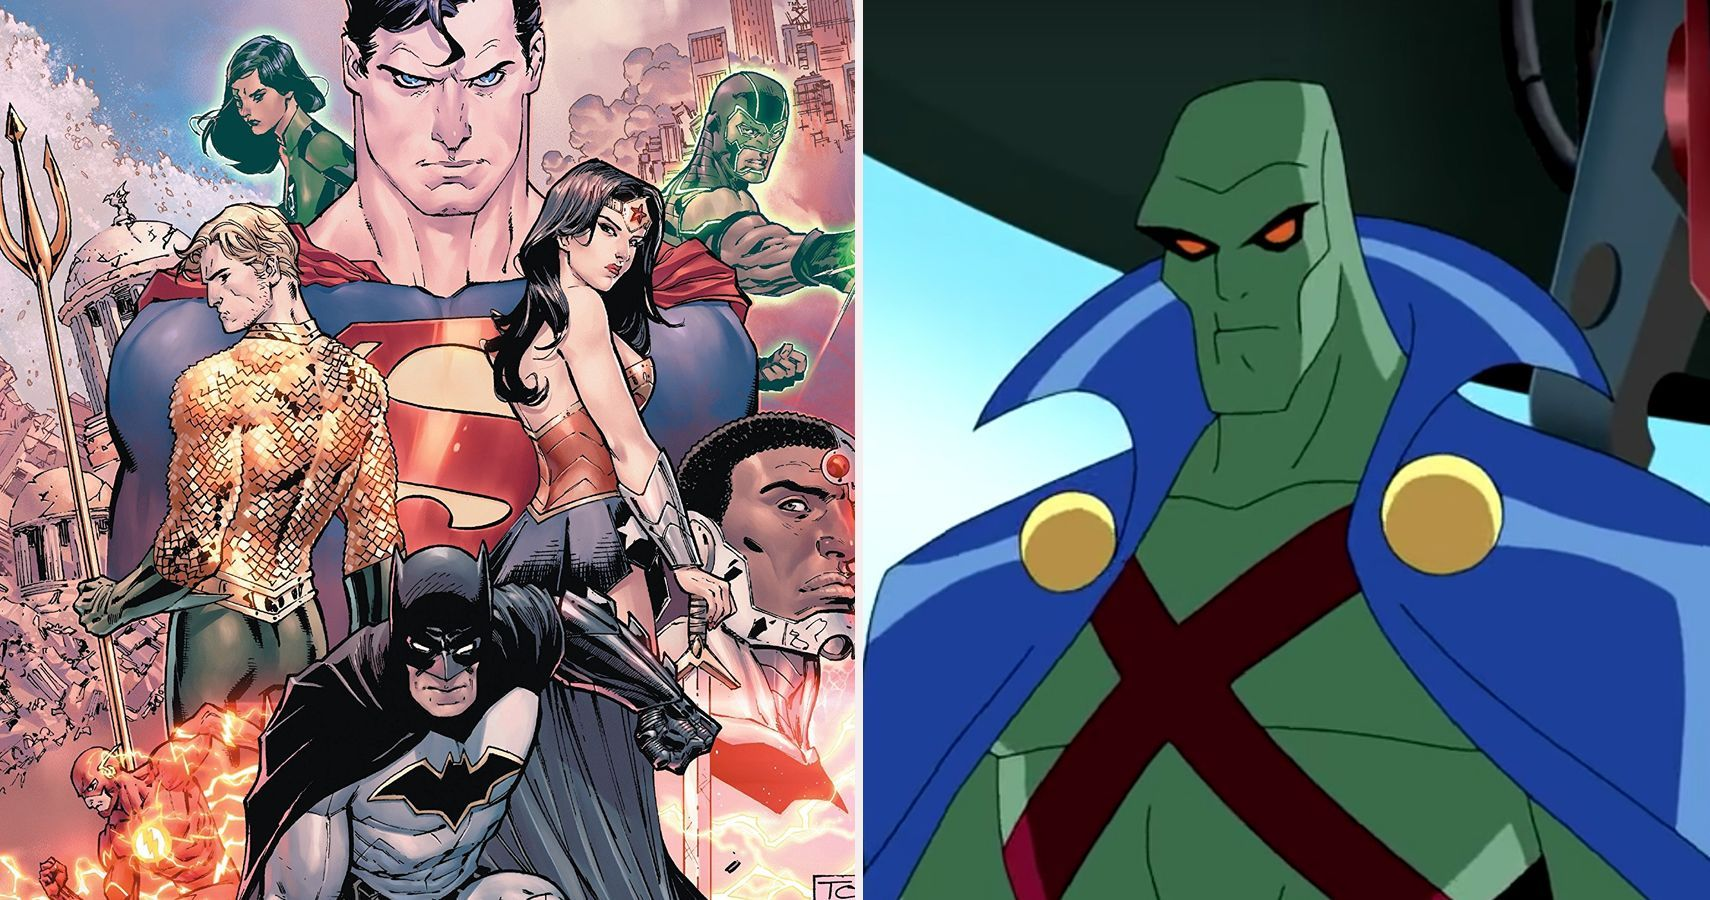 Dc Ranking The Top 10 Members Of The Justice League By Personality The Justice League Represen Dc Comics Superheroes Justice League Original Justice League